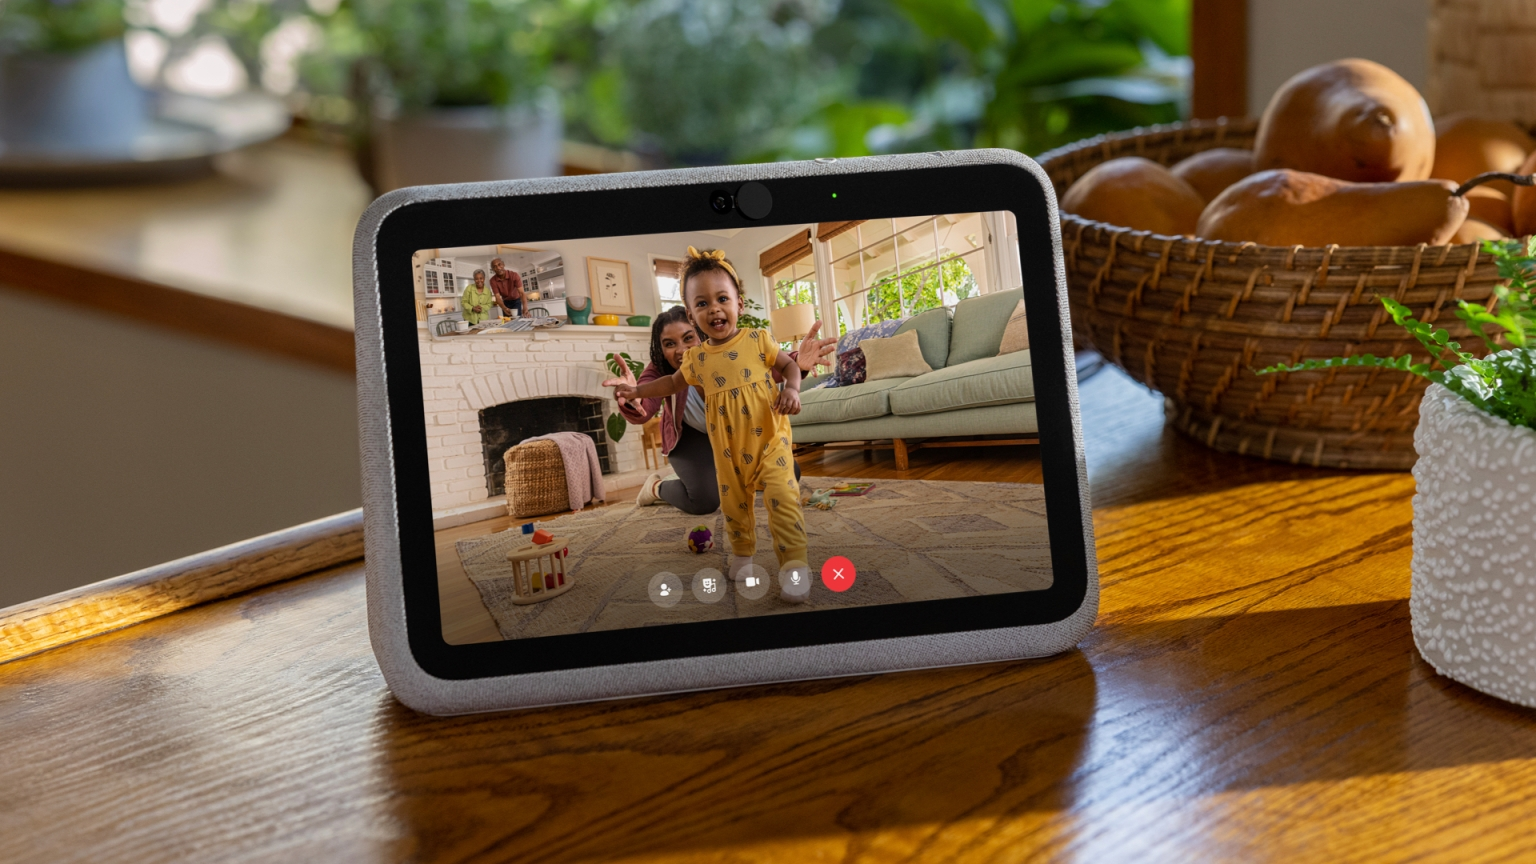 Facebook adds two new devices to Portal family - Portal Go and Portal+